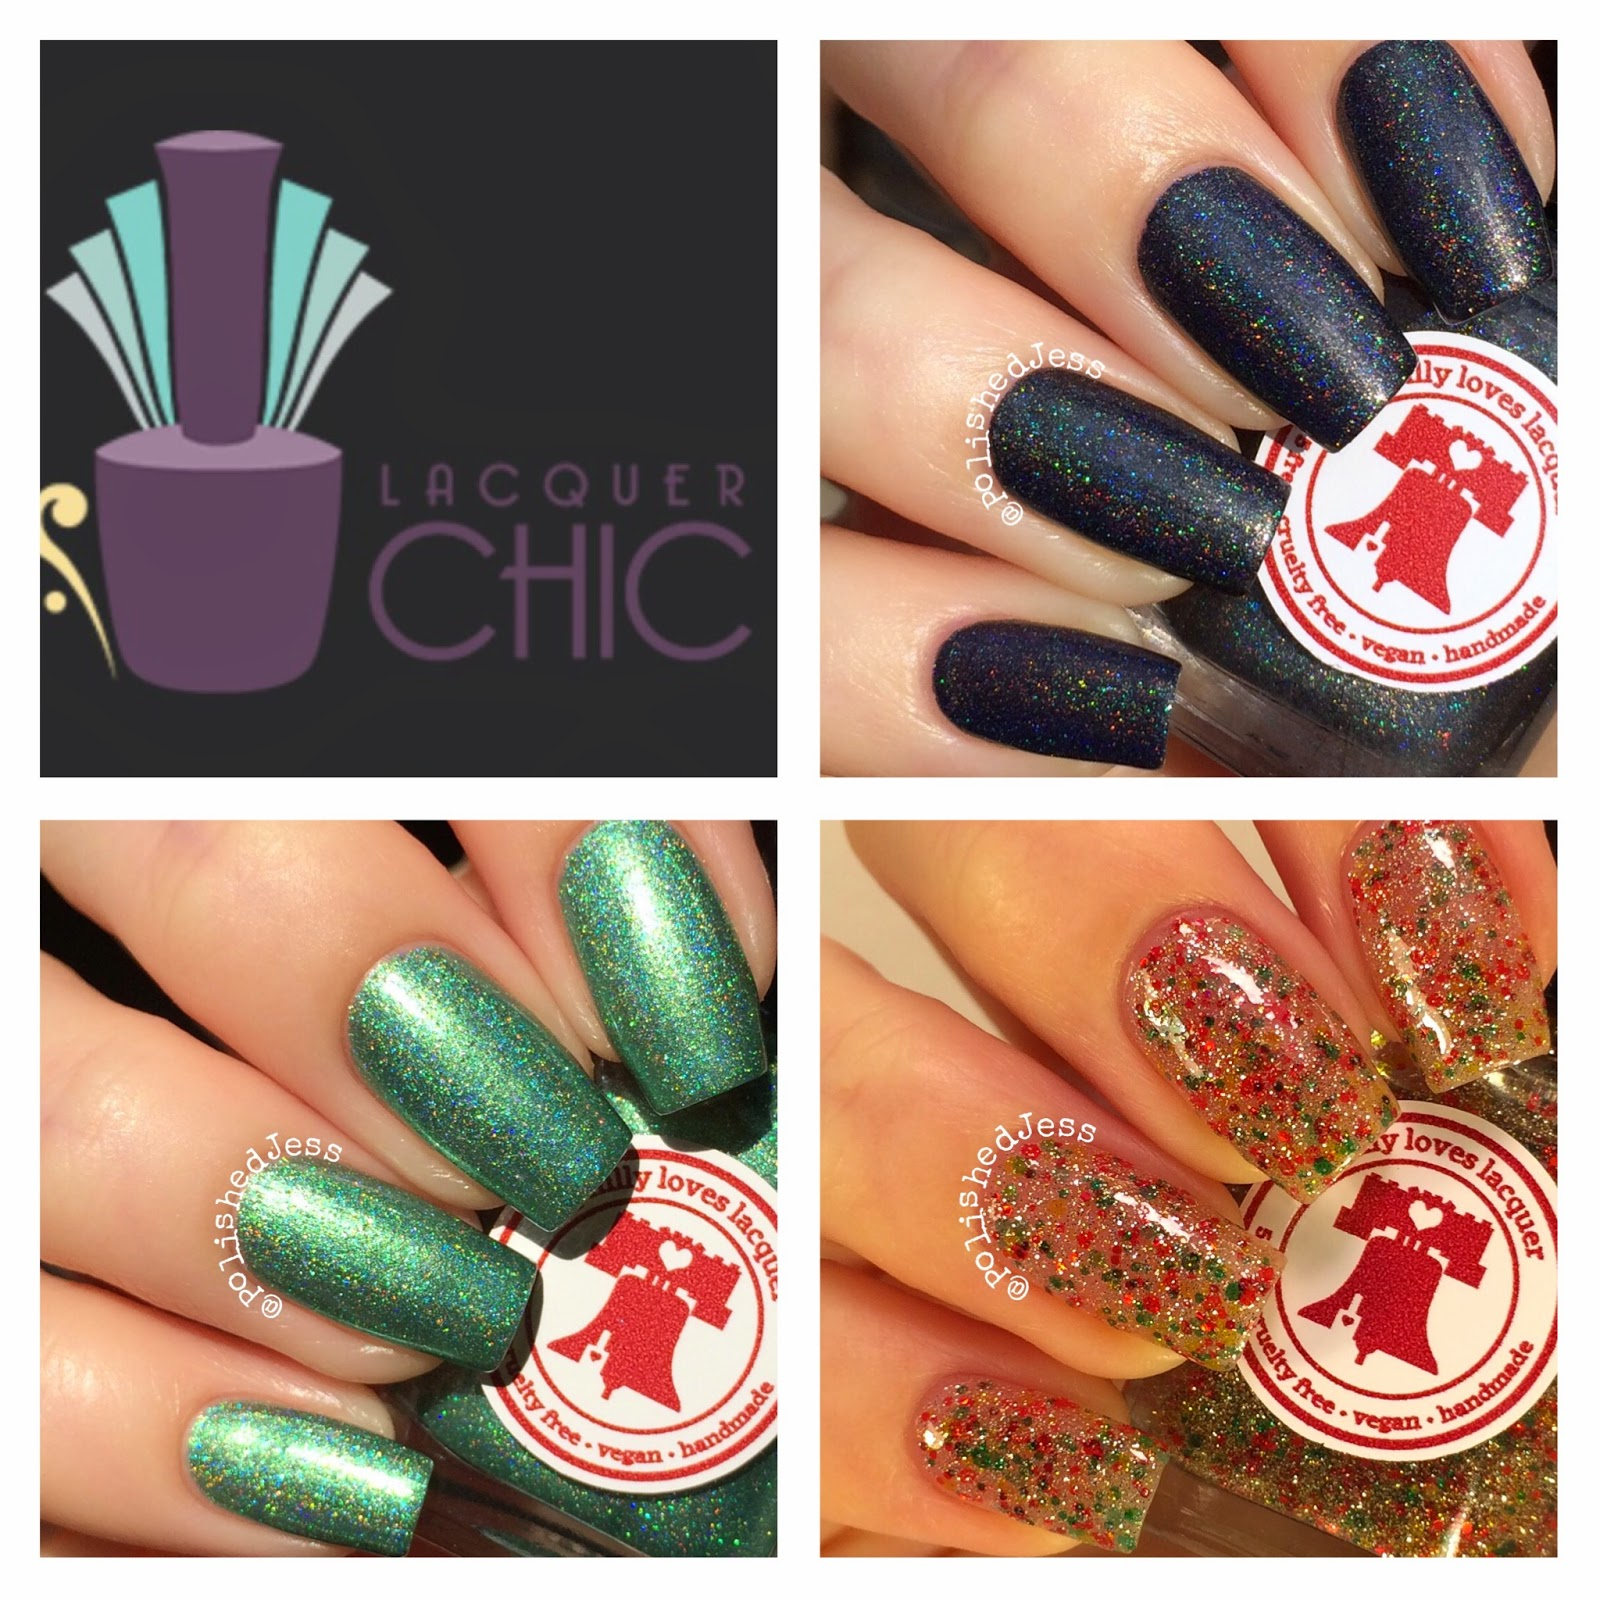 Polished Jess : Lacquer Chic - Exclusive Philly Loves Lacquer ...